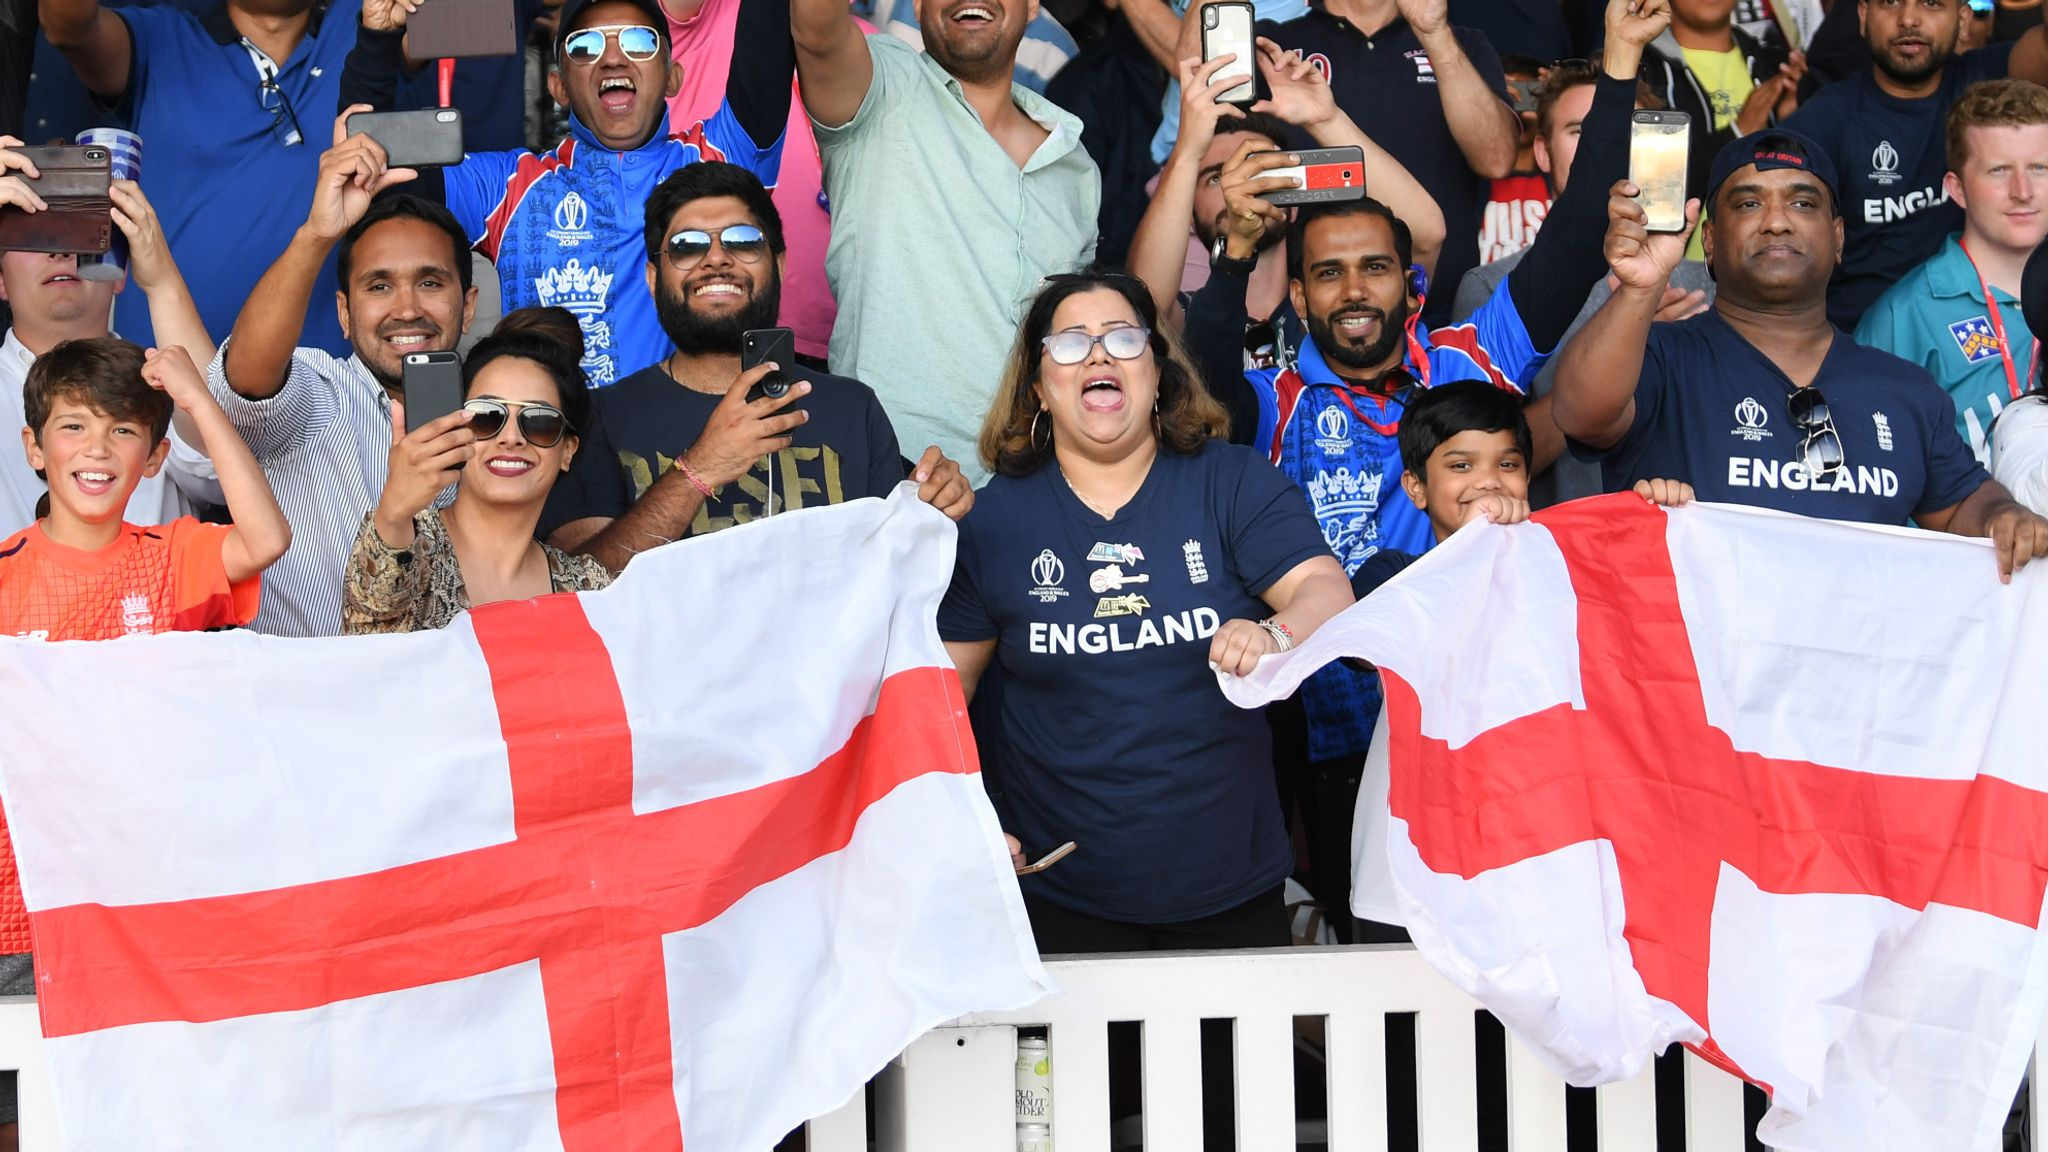 Cricket Supporters' Association's new initiative 'Every Cricket Fan' aims to improve diversity of cricket | Cricket News | Sky Sports